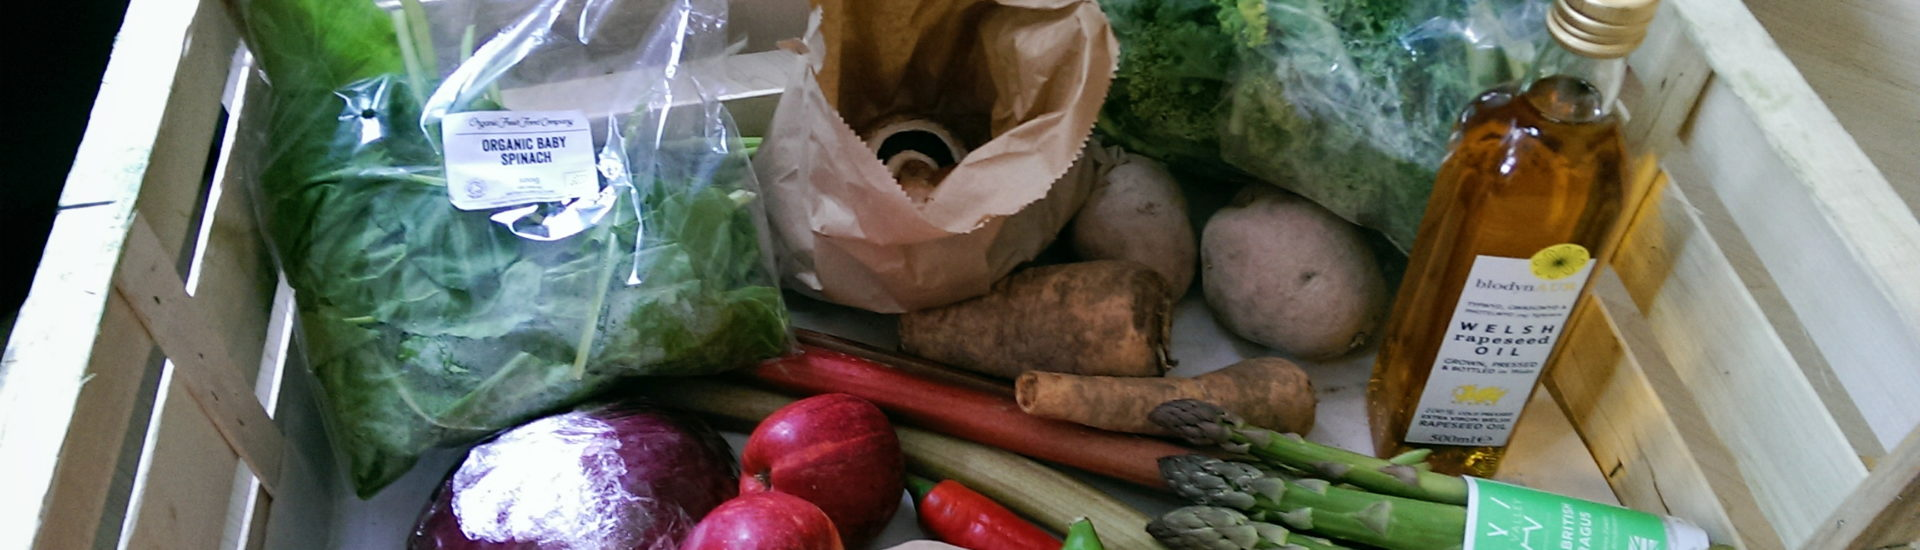 Penylan Pantry Veg Box